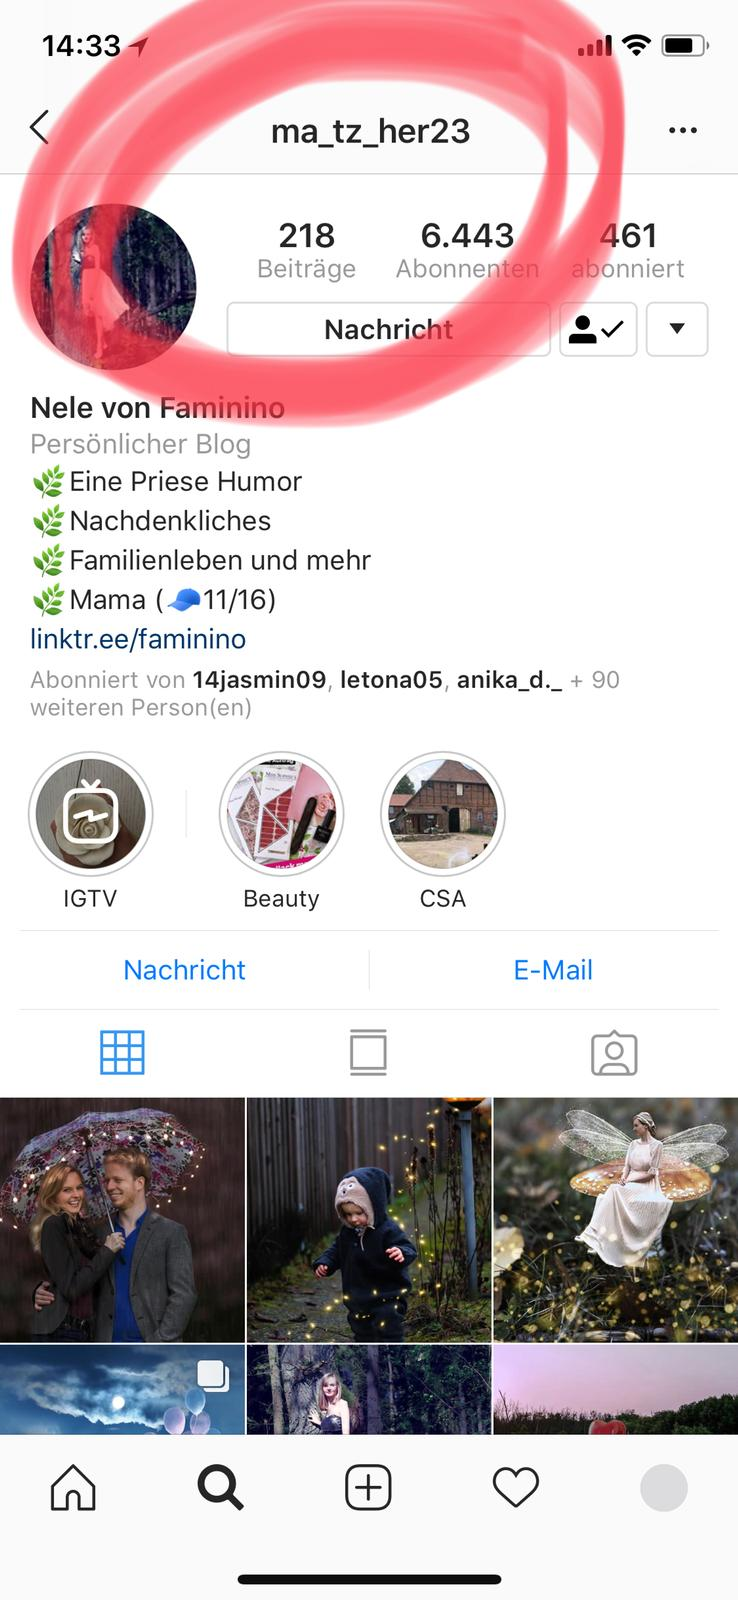 Instagram-Account gehackt